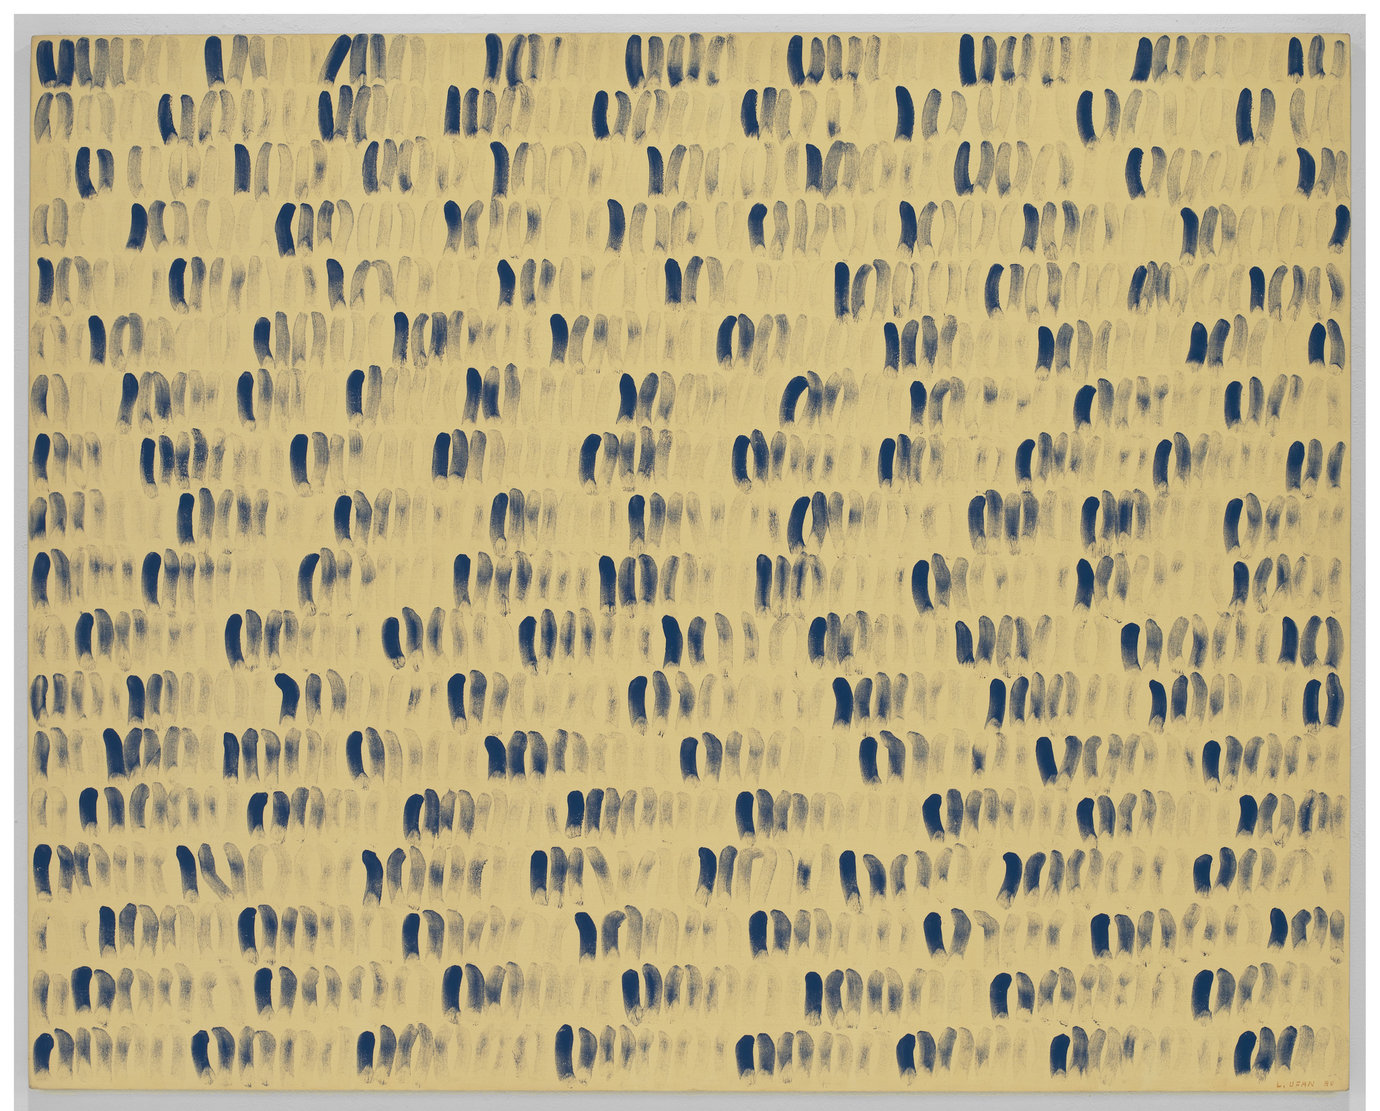 ", 1980. glue and stone pigment on canvas, 71-1/2"" x 89-3/8"" (181.7 cm x 227 cm)."